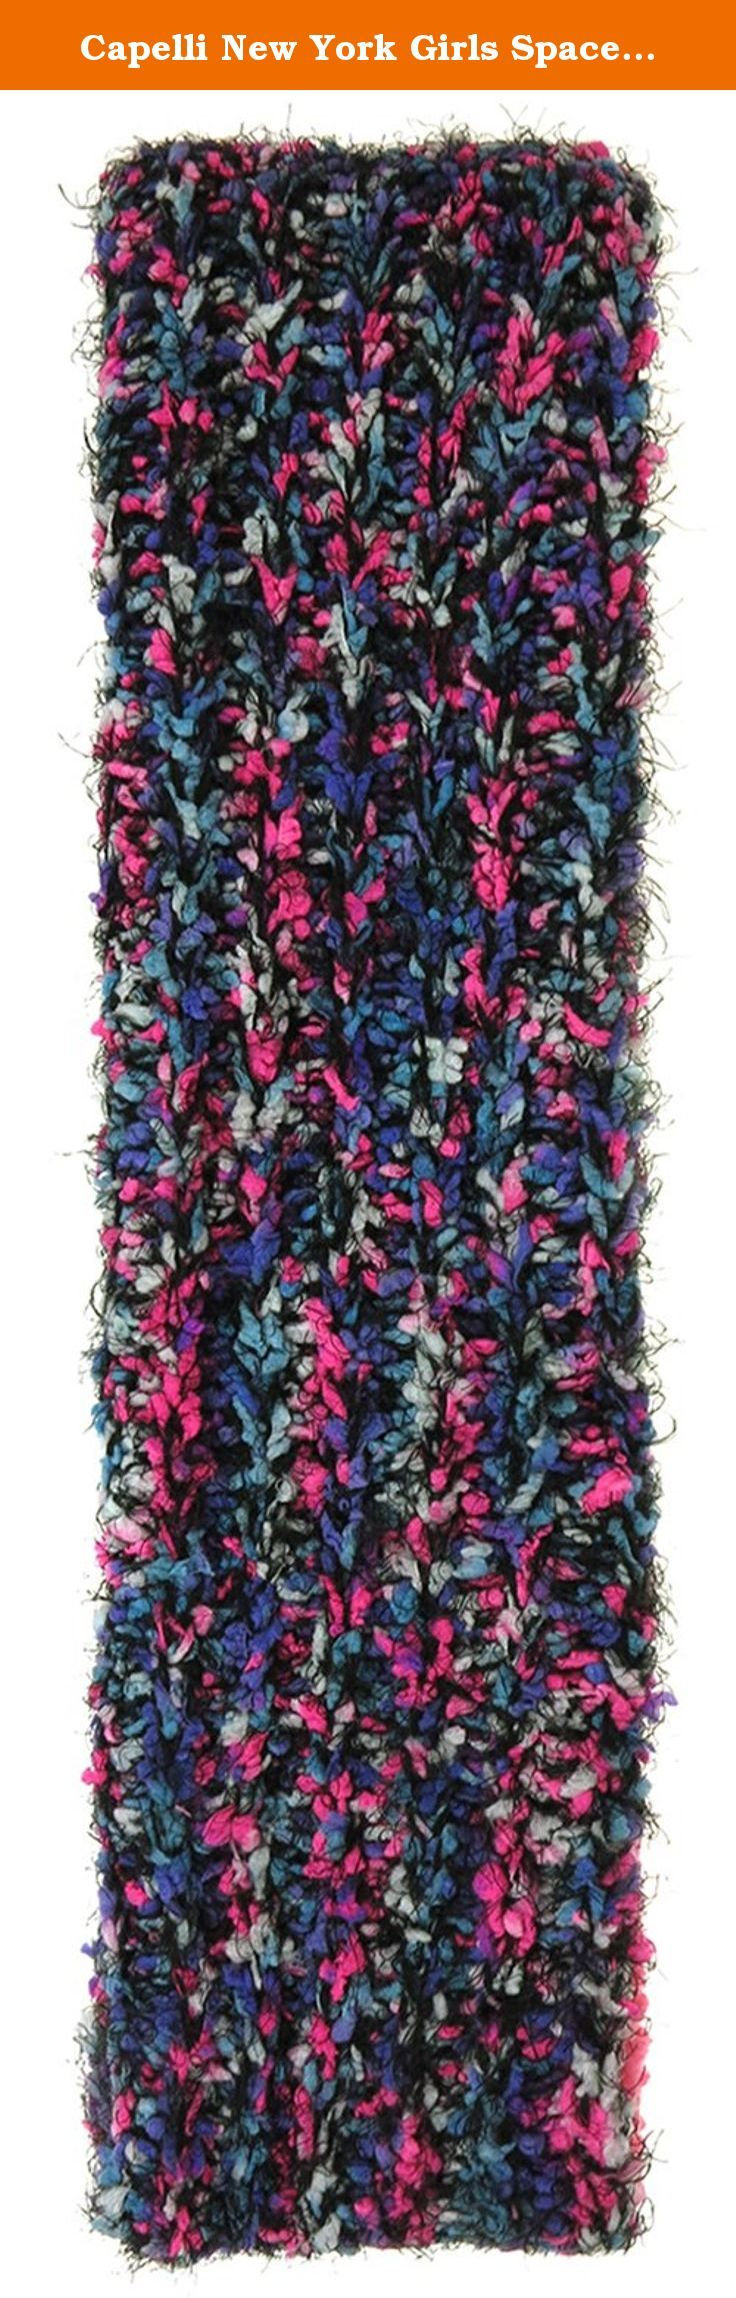 Capelli New York Girls Spacedye Multicolor Loop Scarf with Berber Lining Black One Size. Stay warm this winter in our large selection of Capelli New York cold weather accessories. Keep cozy in chunky knits or go bold in faux fur, our wide assortment of hats, earmuffs, scarves, gloves, and mufflers ensures you will be stylish during the cold winter months.